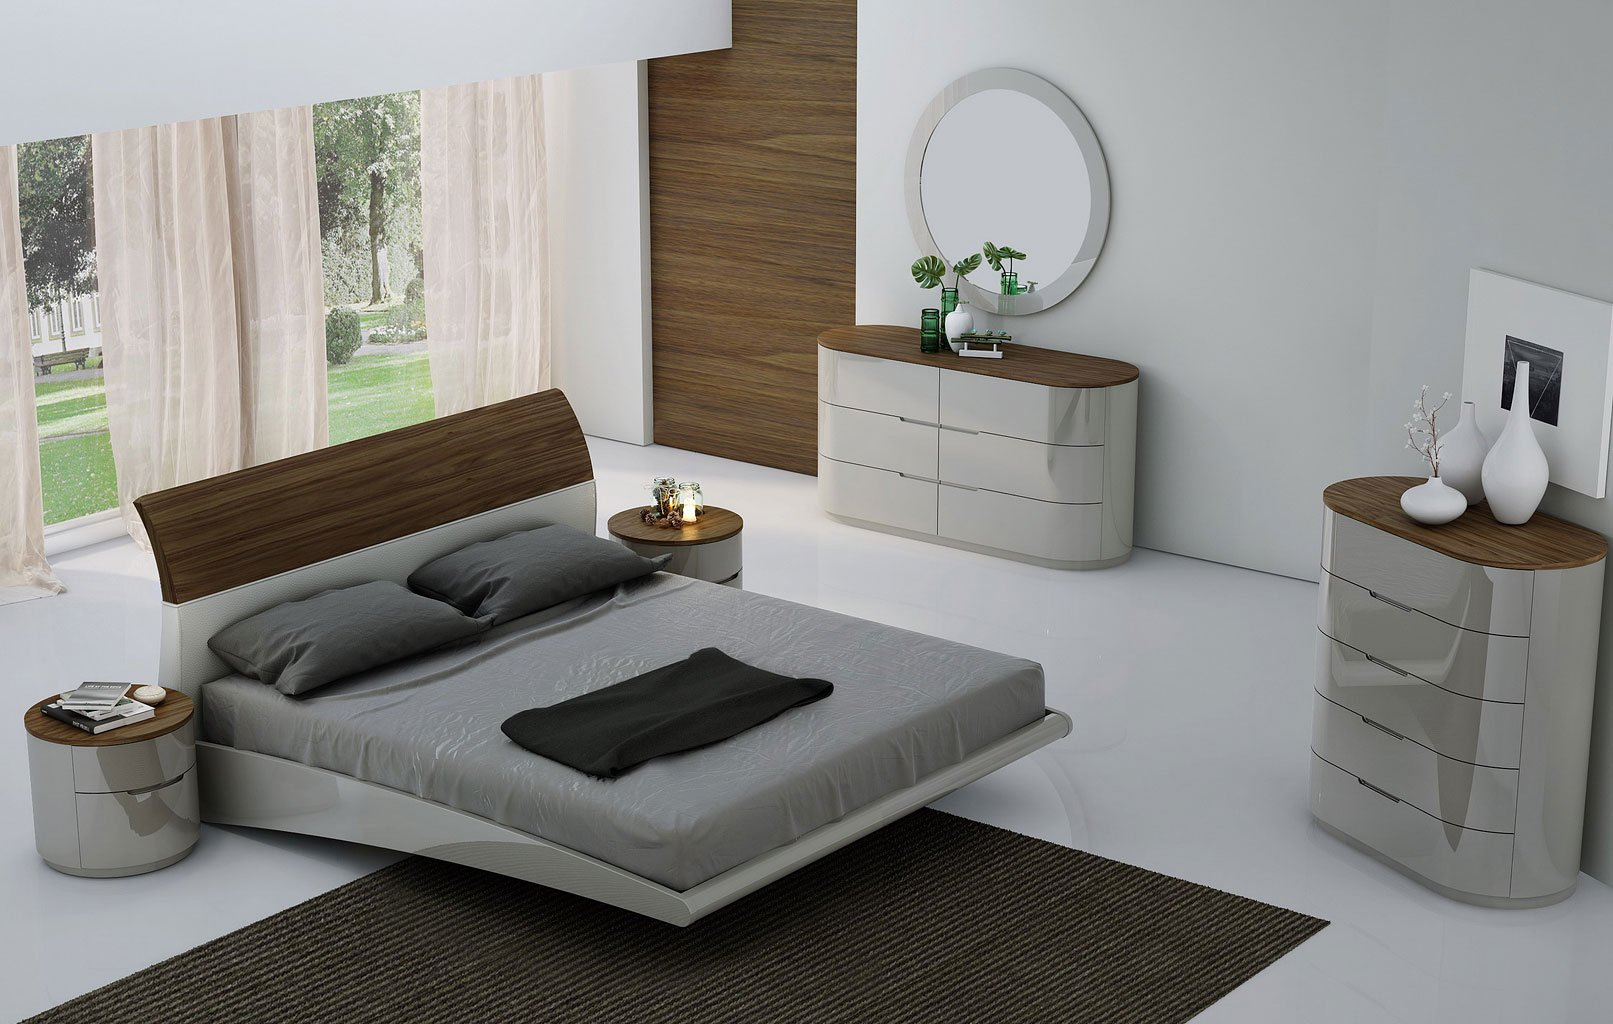 Furniture Amsterdam Amsterdam Platform Bedroom Set Jm Furniture 1 Reviews